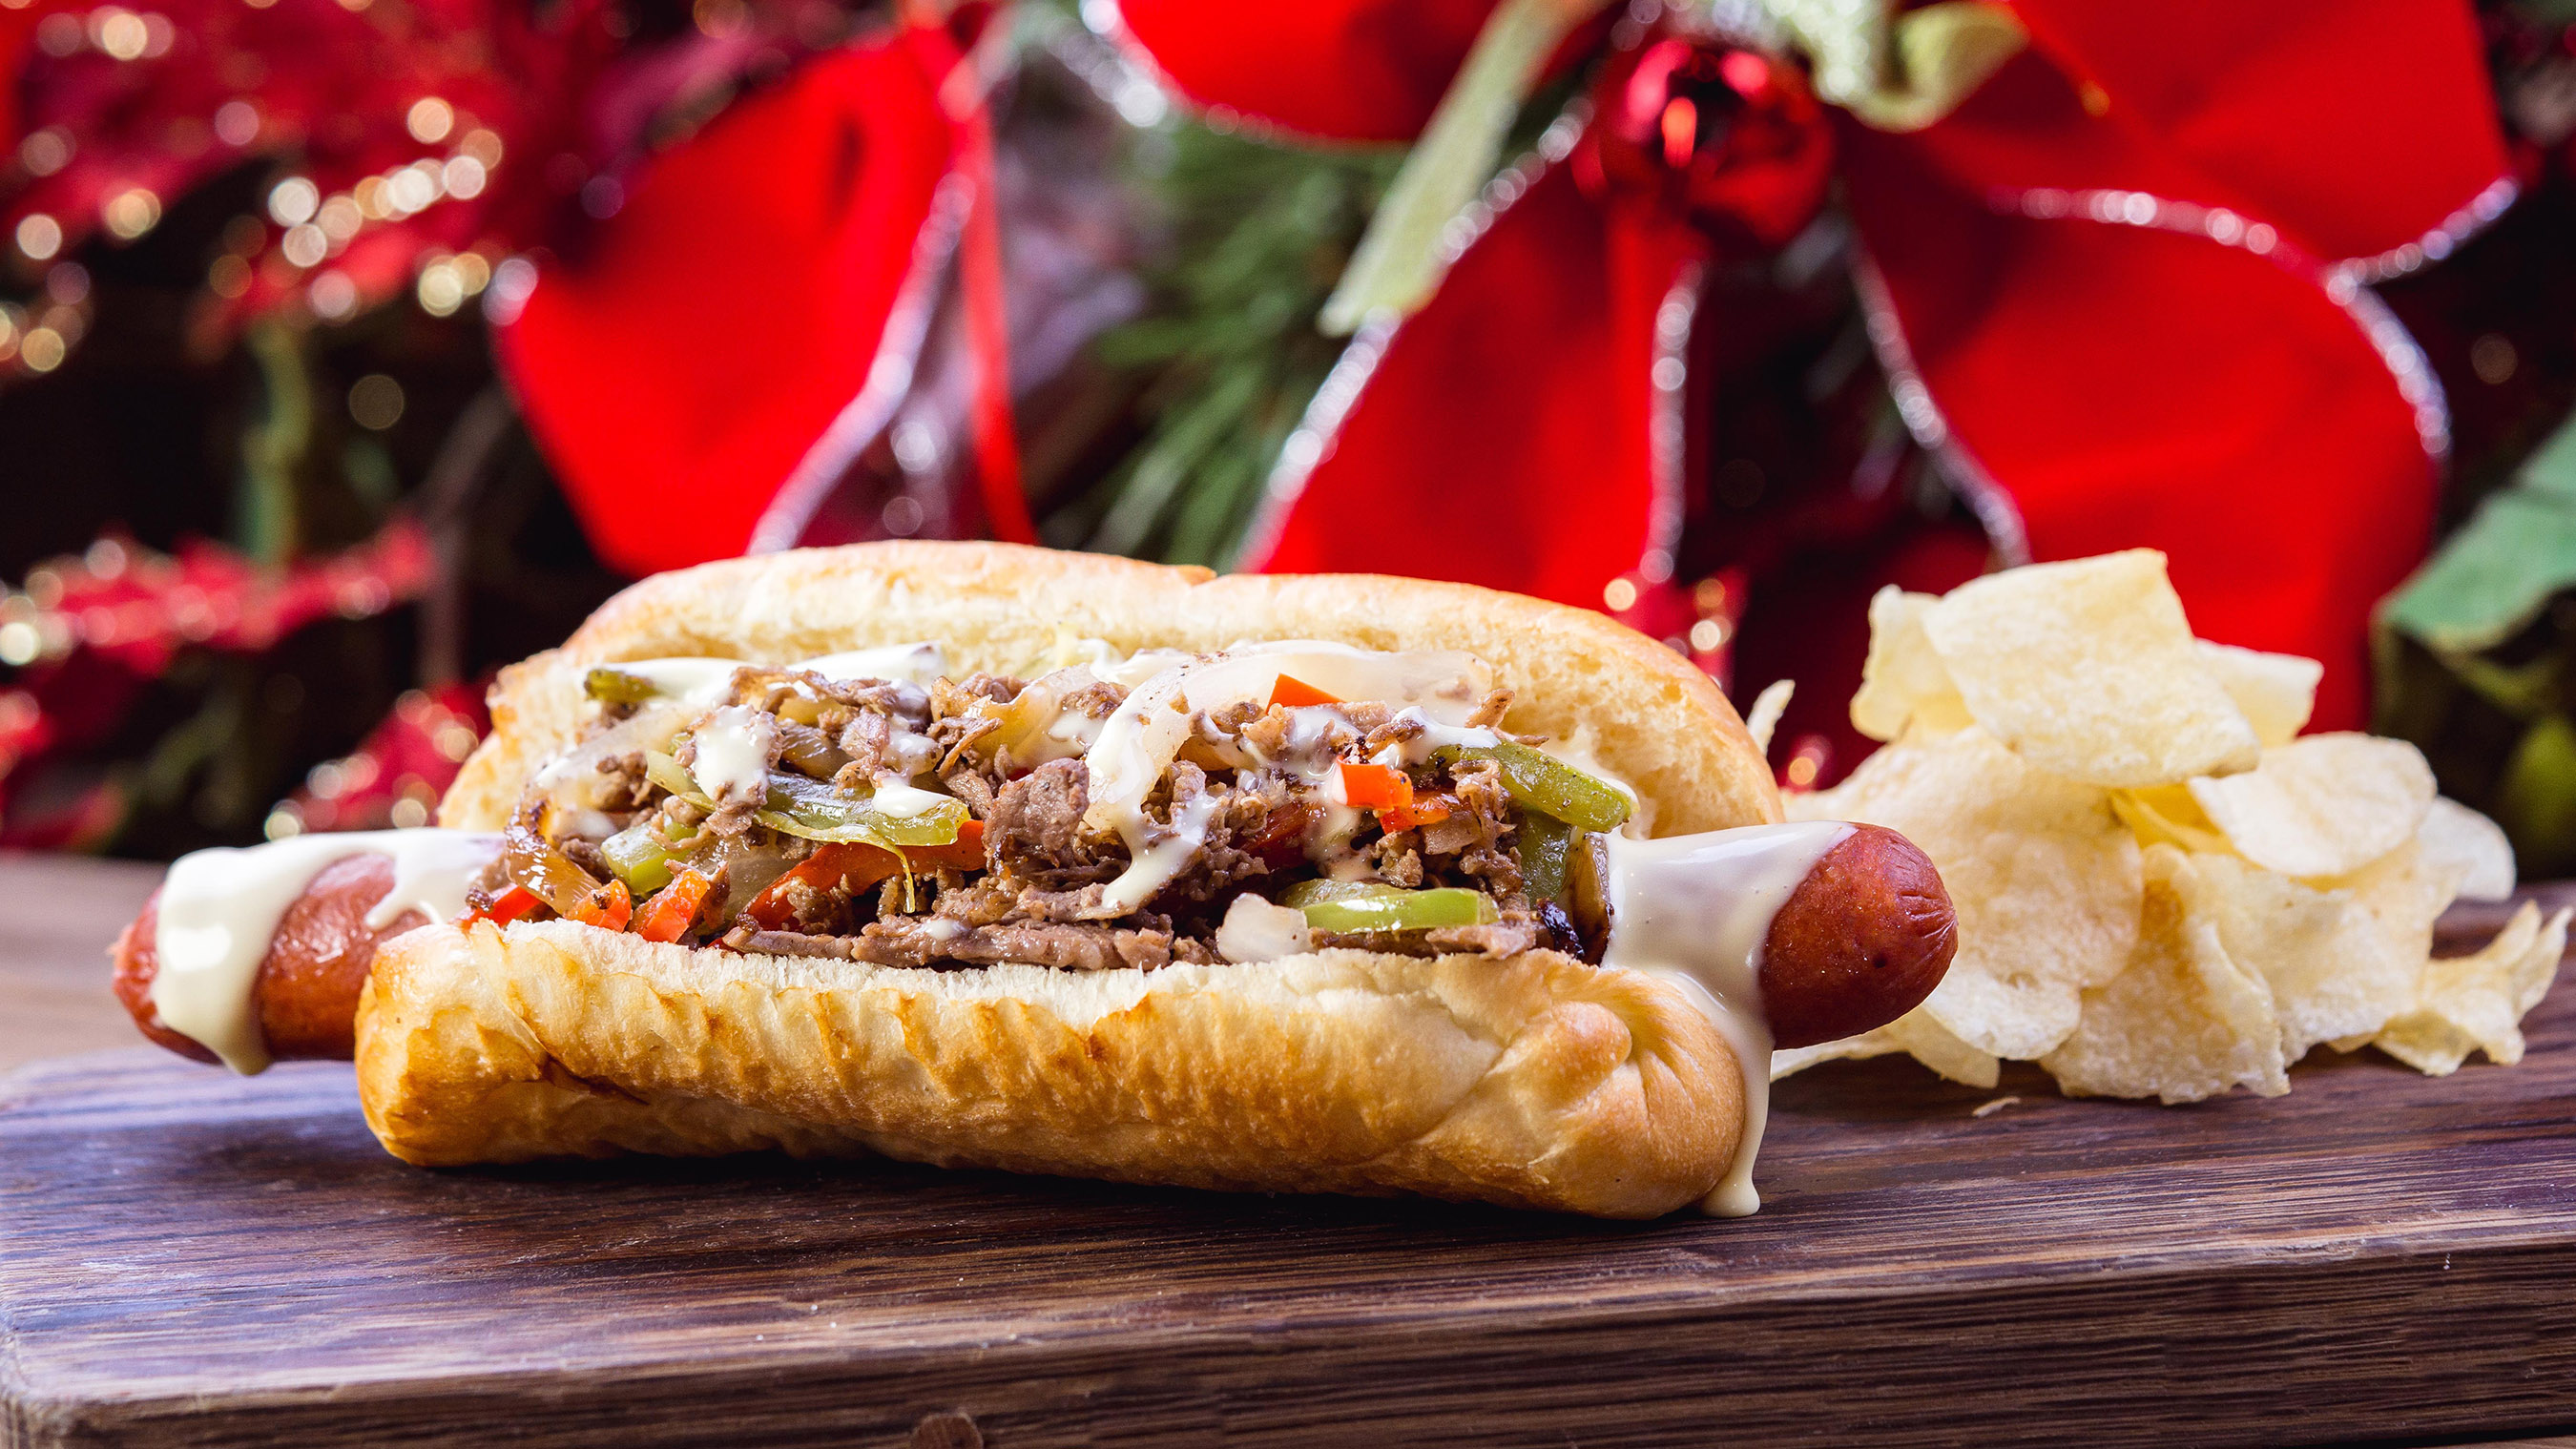 The Philly cheesesteak dog can be found for a limited time at Refreshment Corner on Main Street, U.S.A. at Disneyland park during Holidays at the Disneyland Resort. It's just one of many specialty food items available throughout the resort during the 2018-2019 holiday season. Disneyland Resort is located in Anaheim, Calif. (Disneyland Resort)